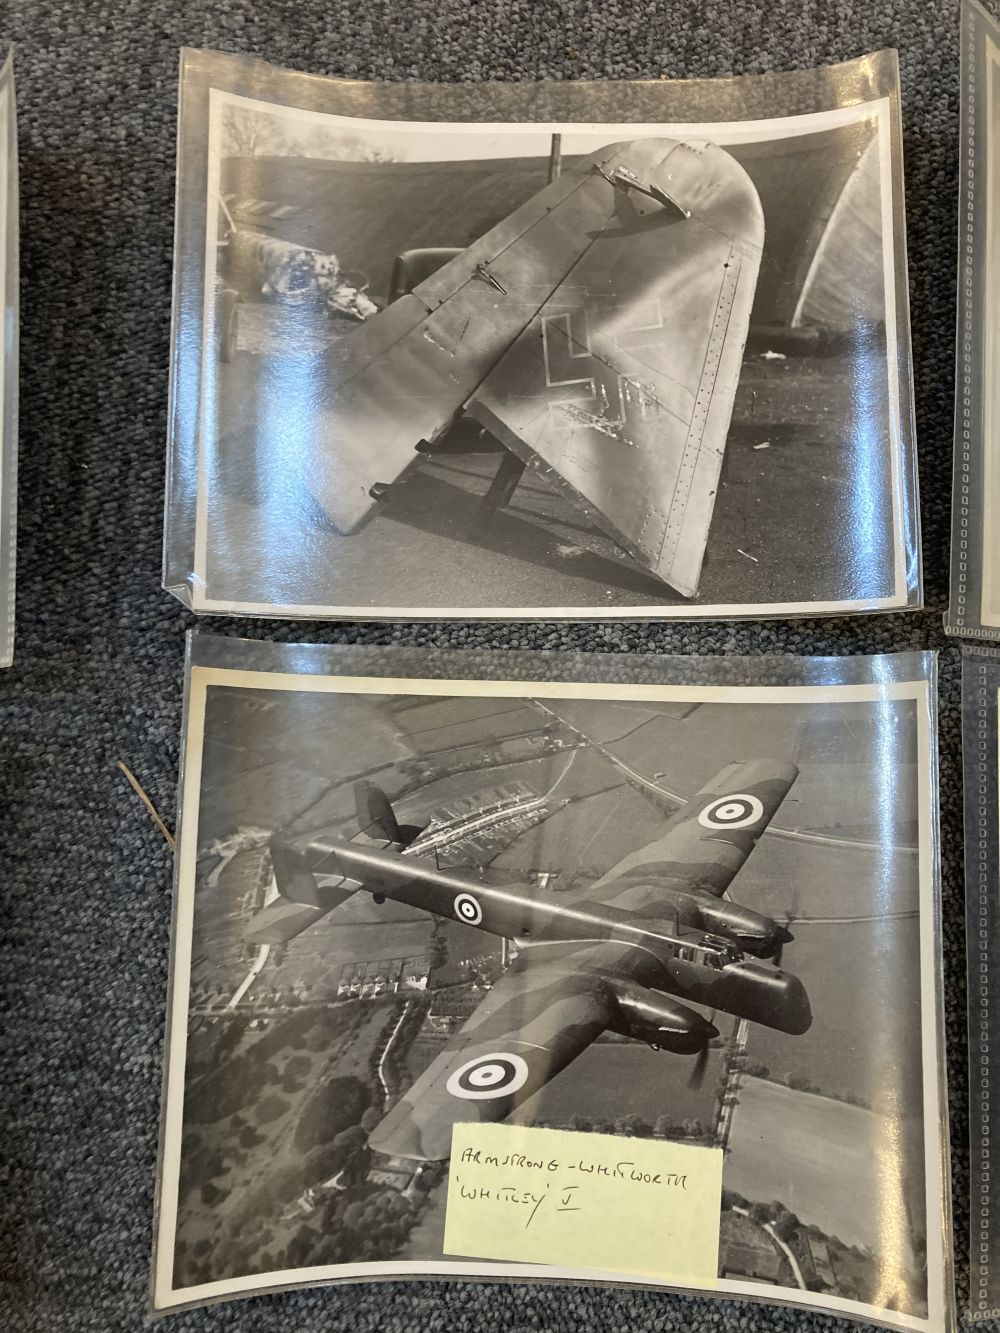 * Aviation Photographs. WWII RAF and Luftwaffe Photographs - Image 2 of 15